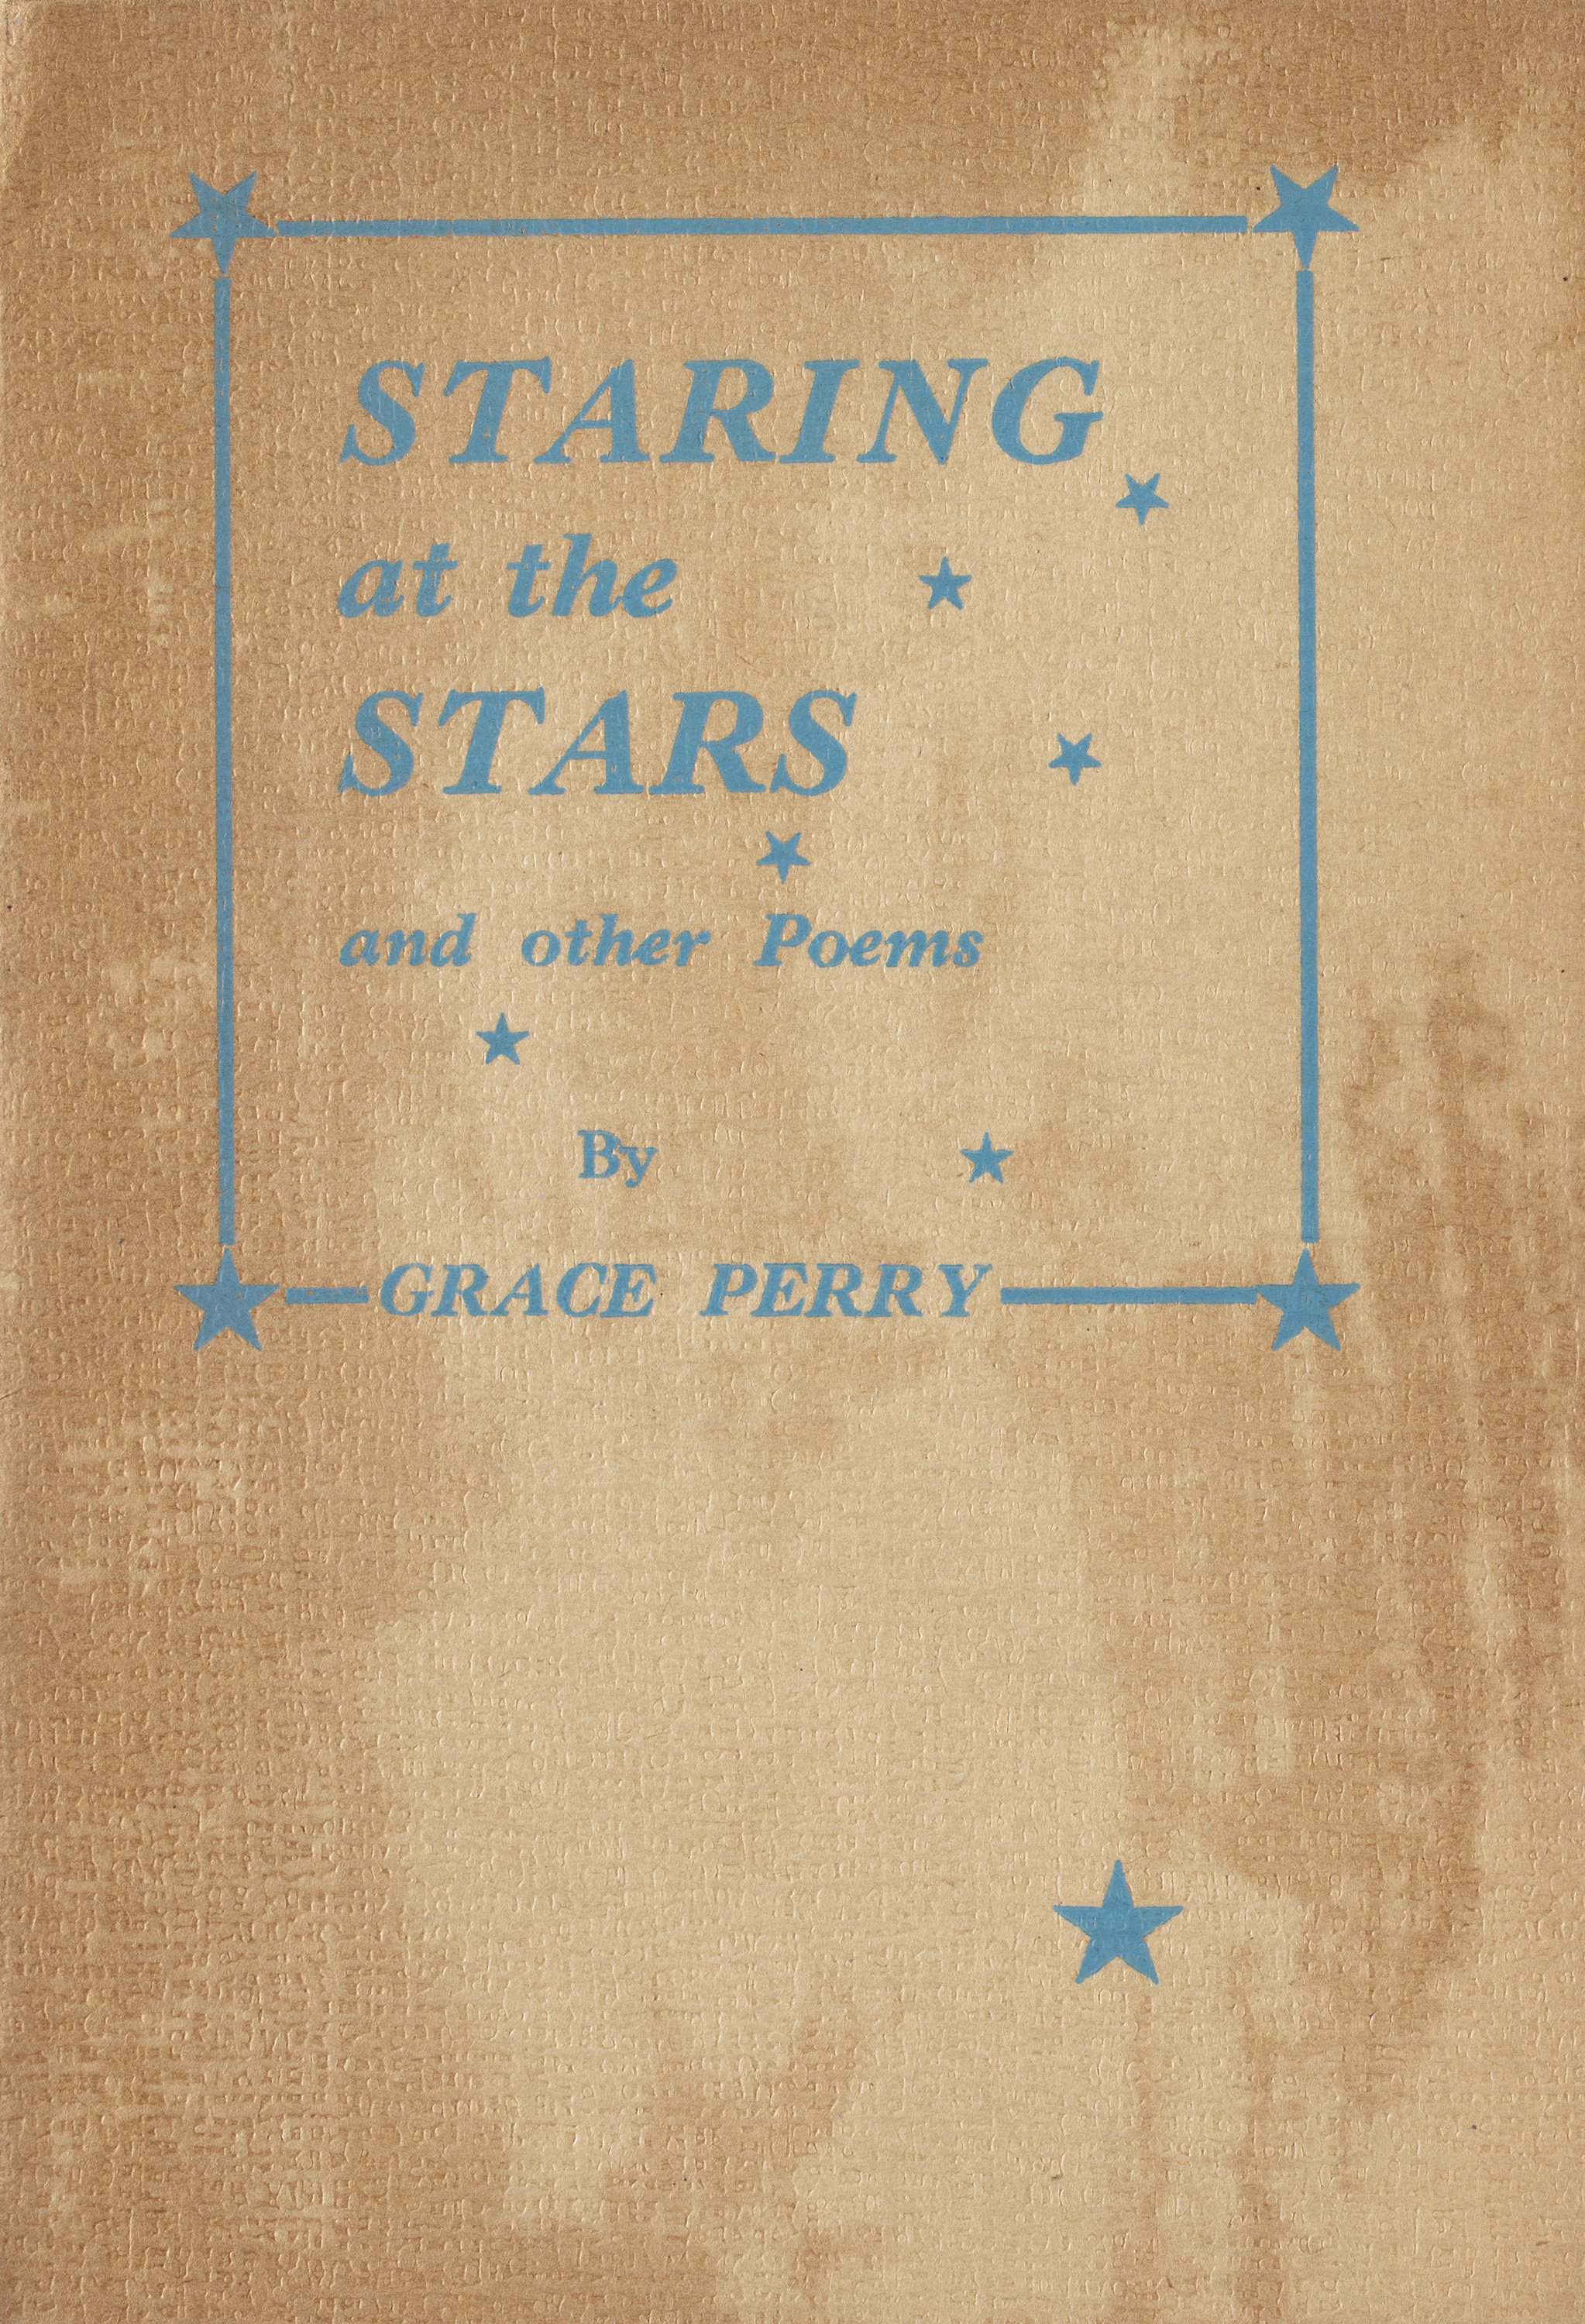 Staring at the stars, and other poems, 1942, by Grace Perry